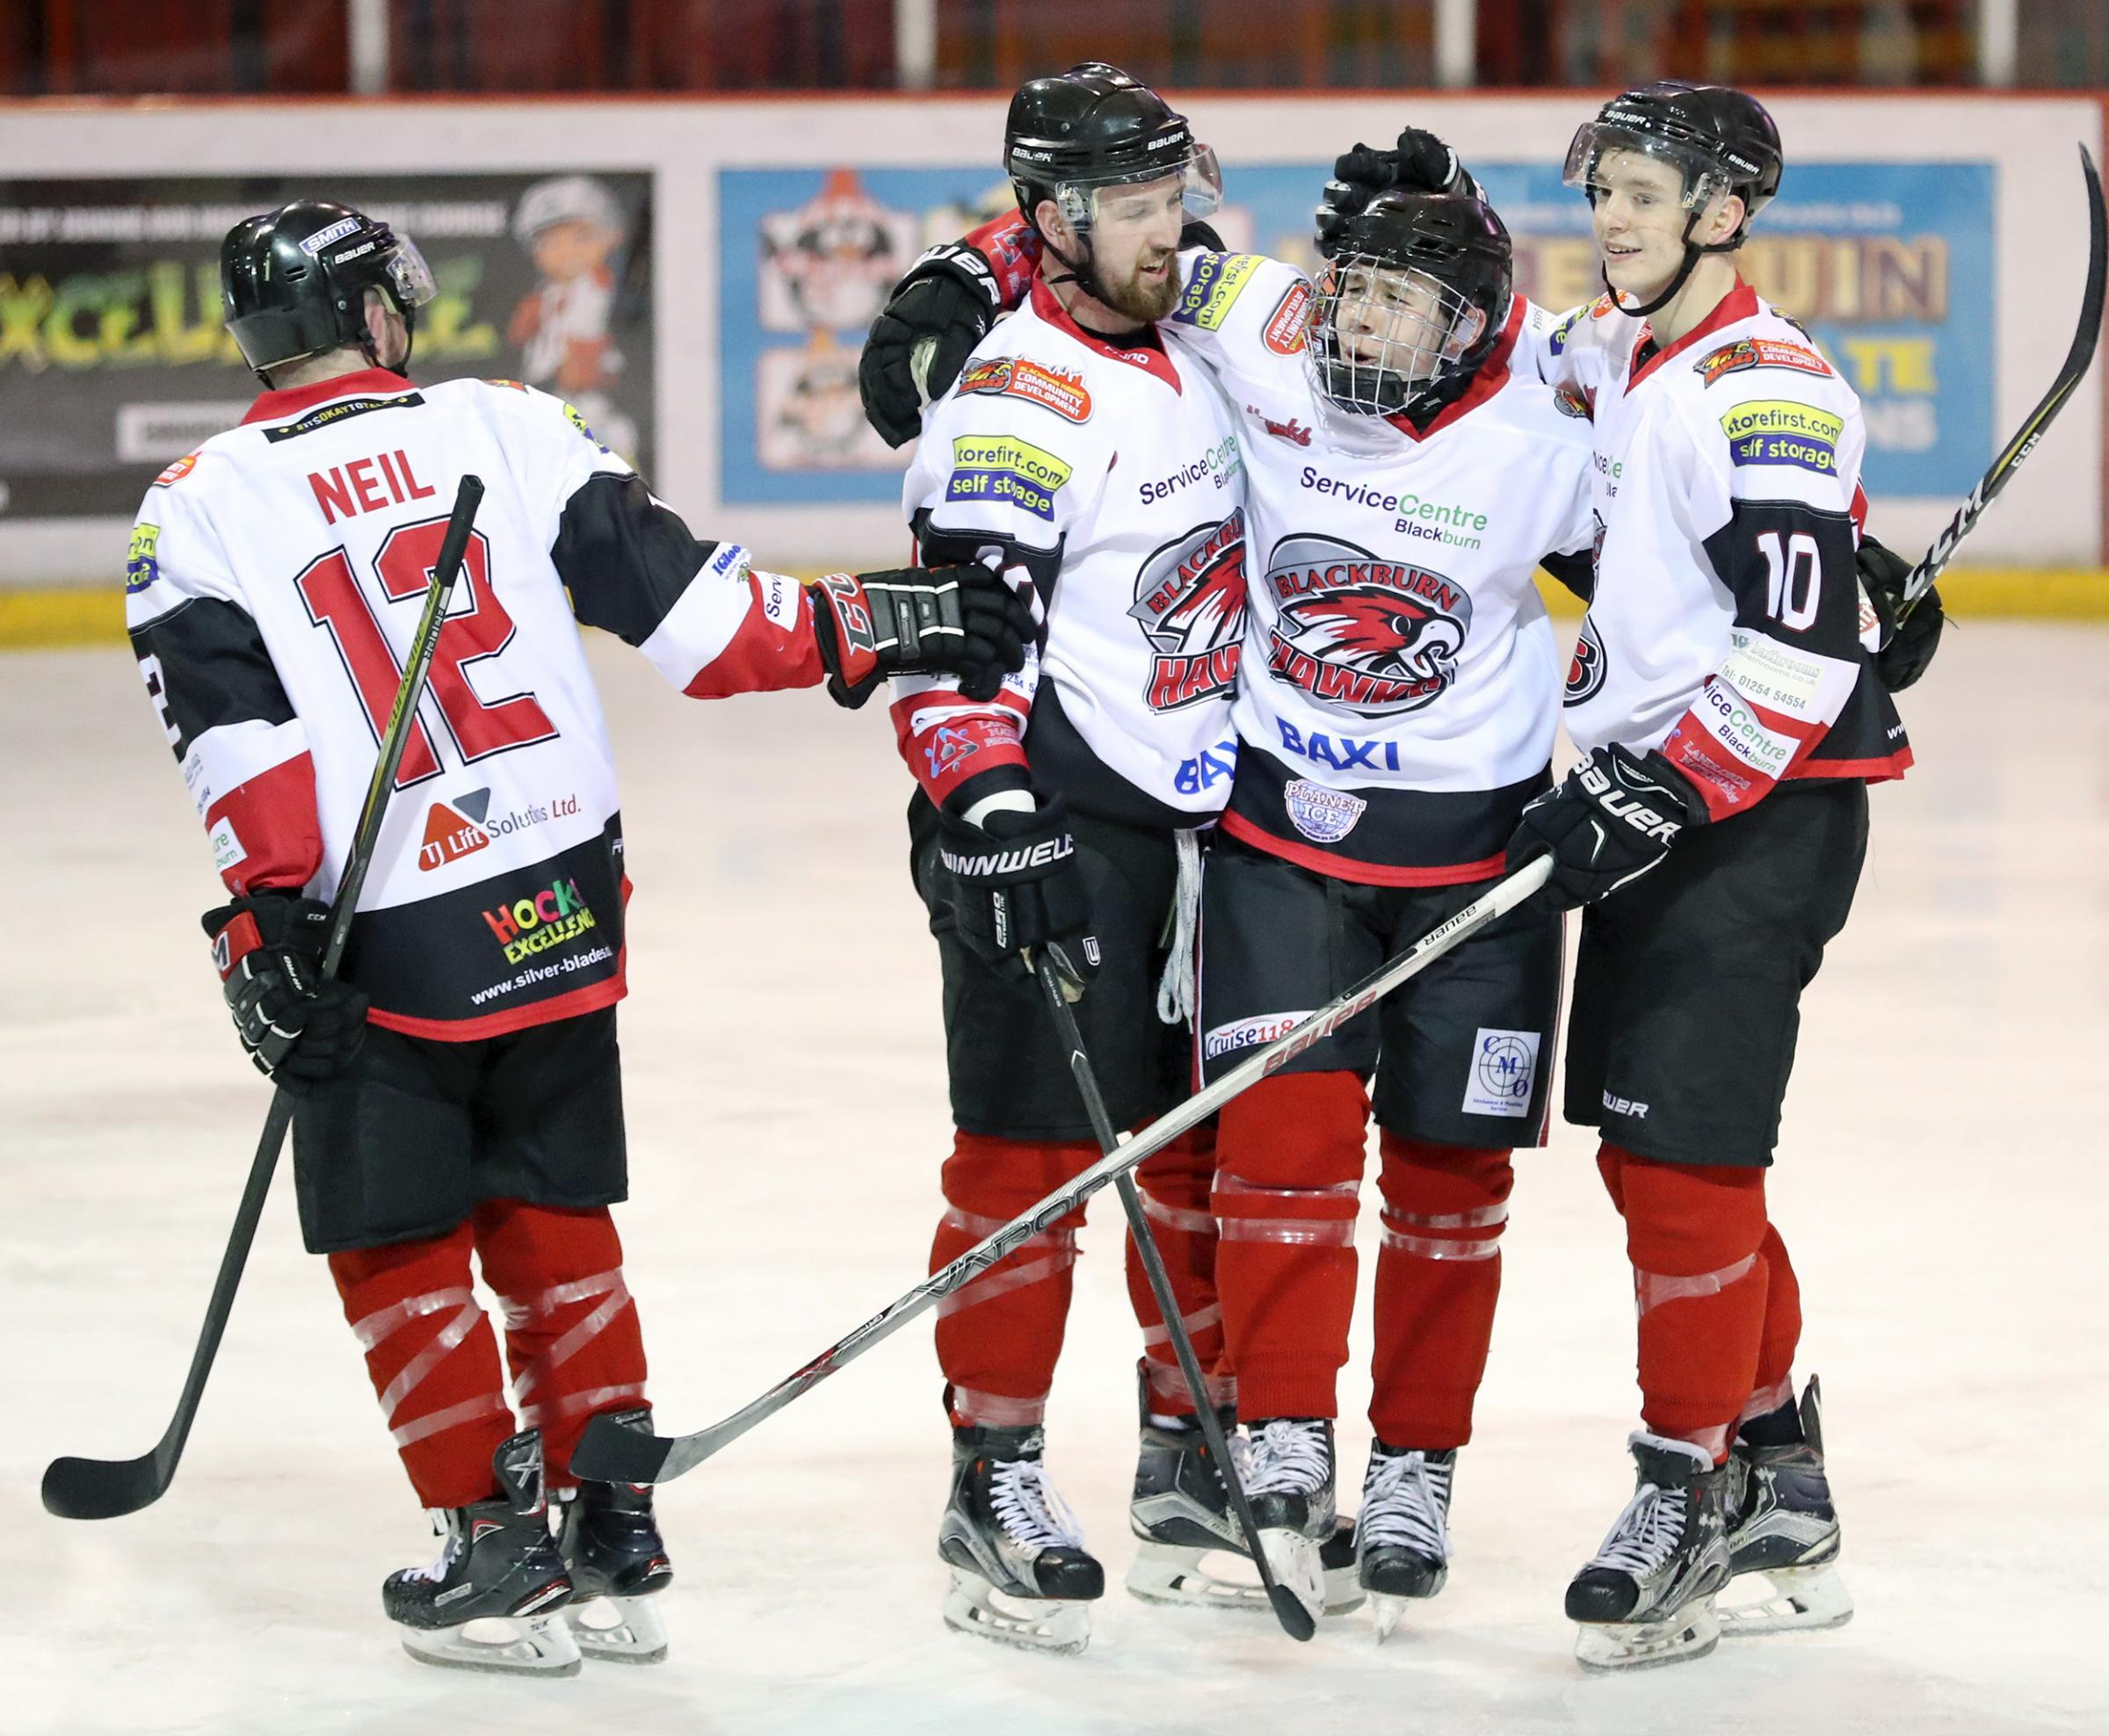 Blackburn Hawks have strengthened their squad for next season